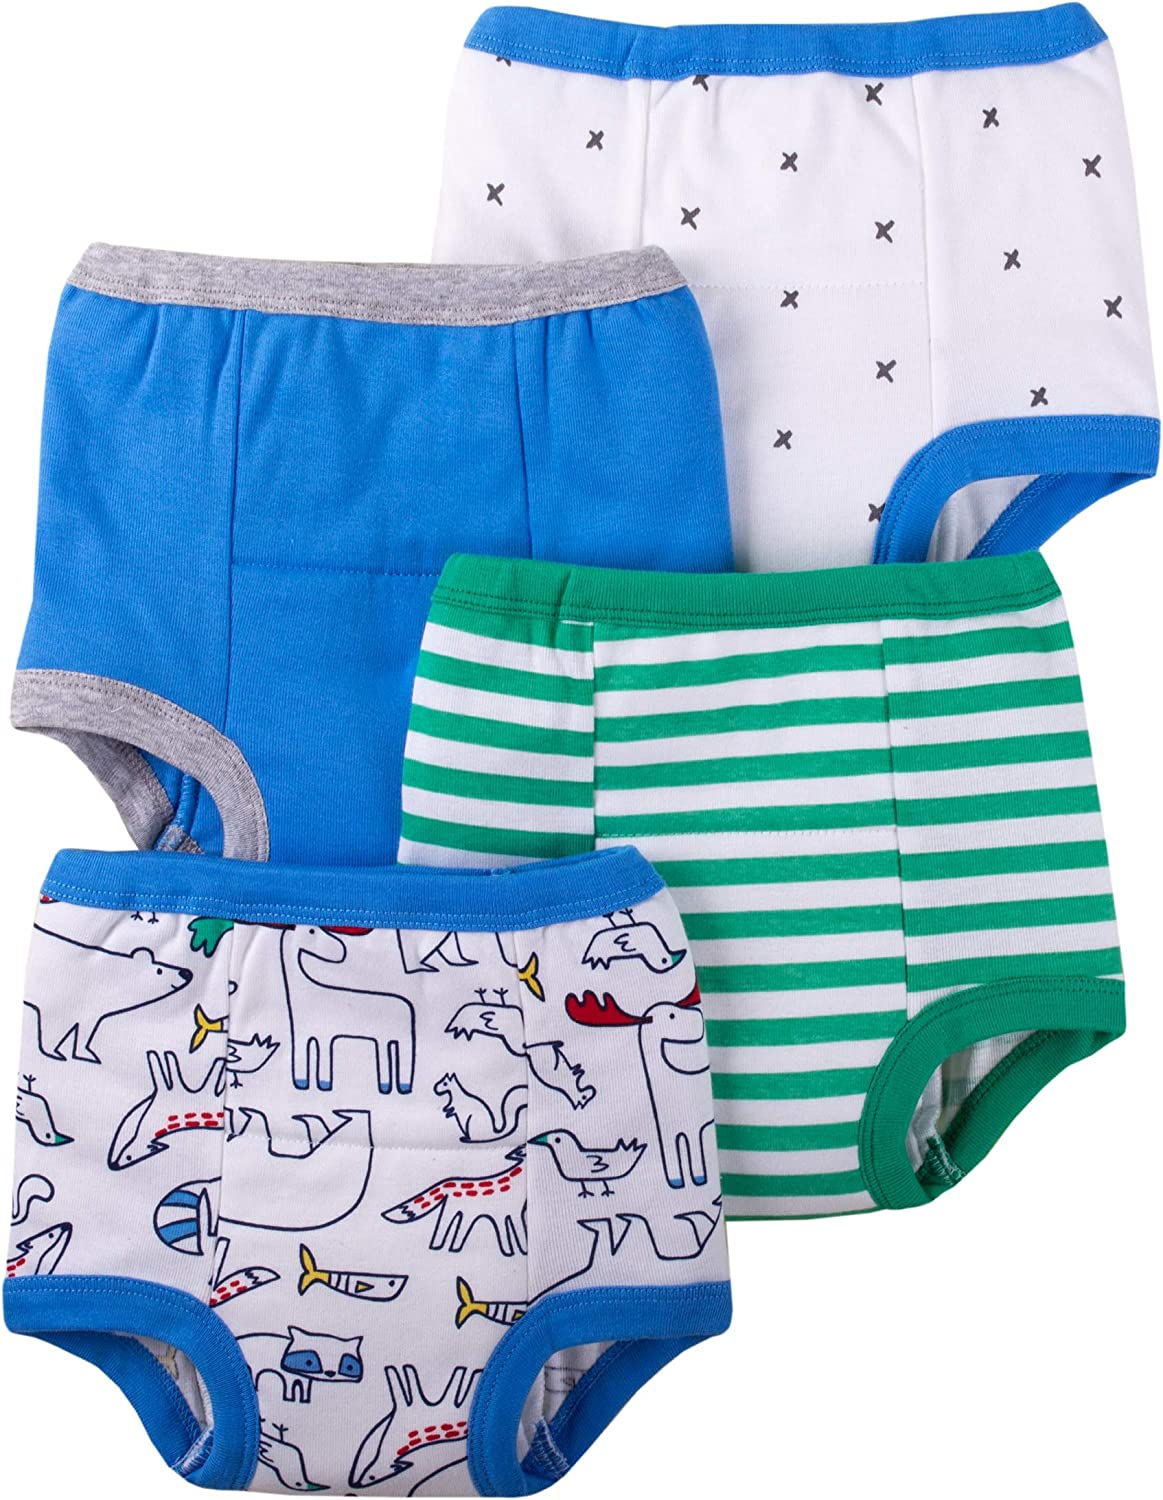 Lamaze Organic Baby Baby-Boys Reusable and Washable Toddler Potty Training Pants, Cotton Cloth